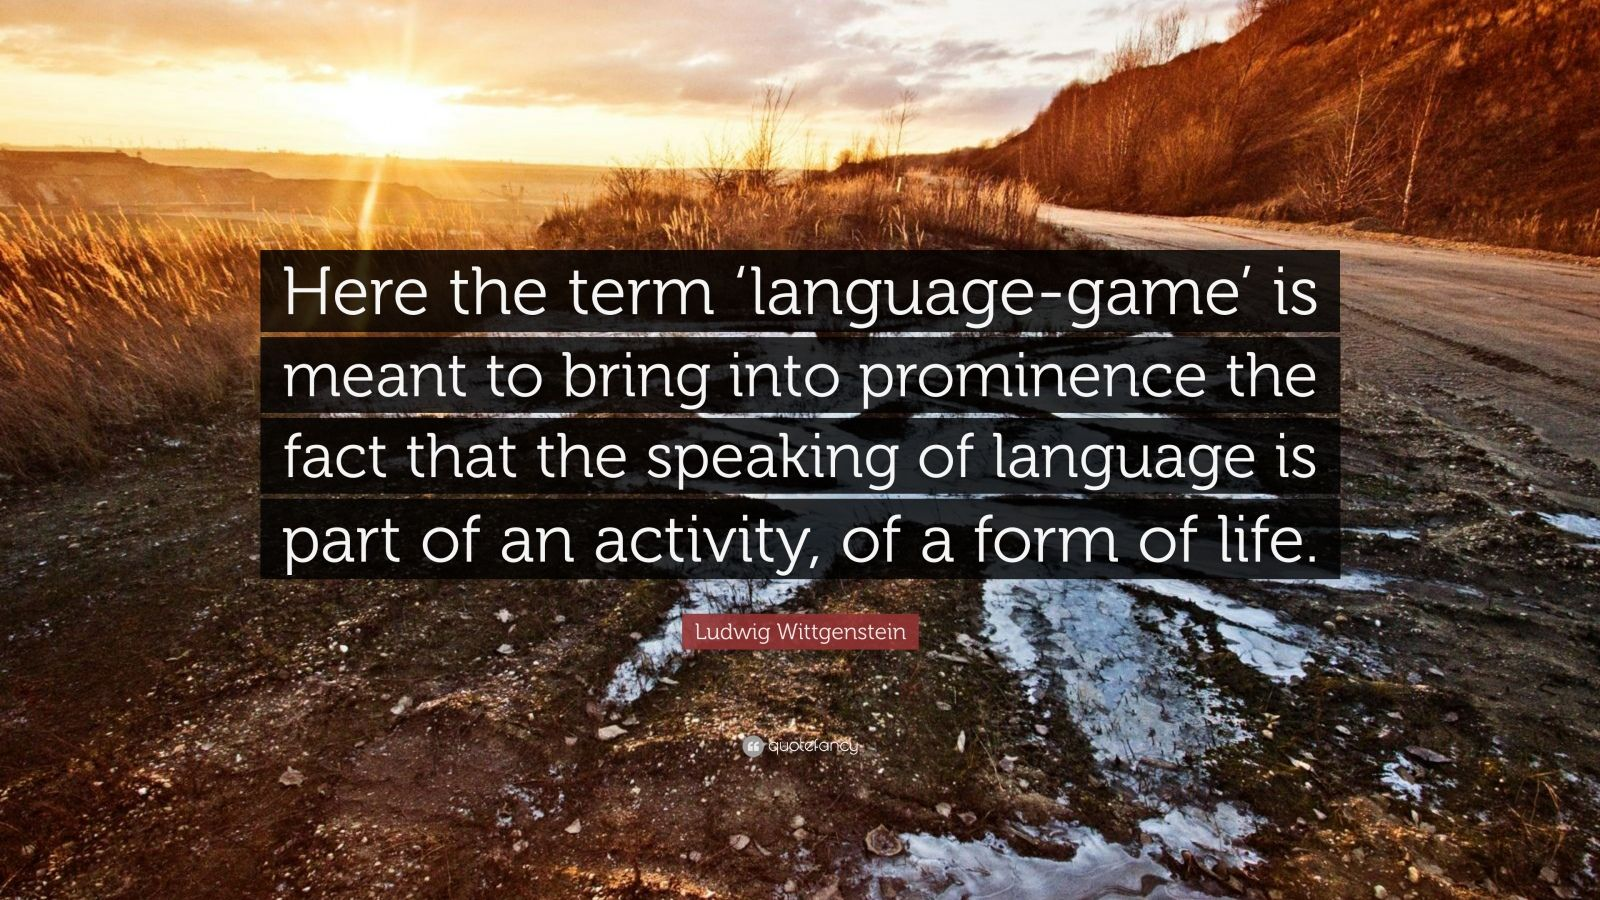 """Ludwig Wittgenstein Quote: """"Here the term 'language-game' is meant to bring into prominence the fact that the speaking of language is part of an activity, of a form of life."""""""